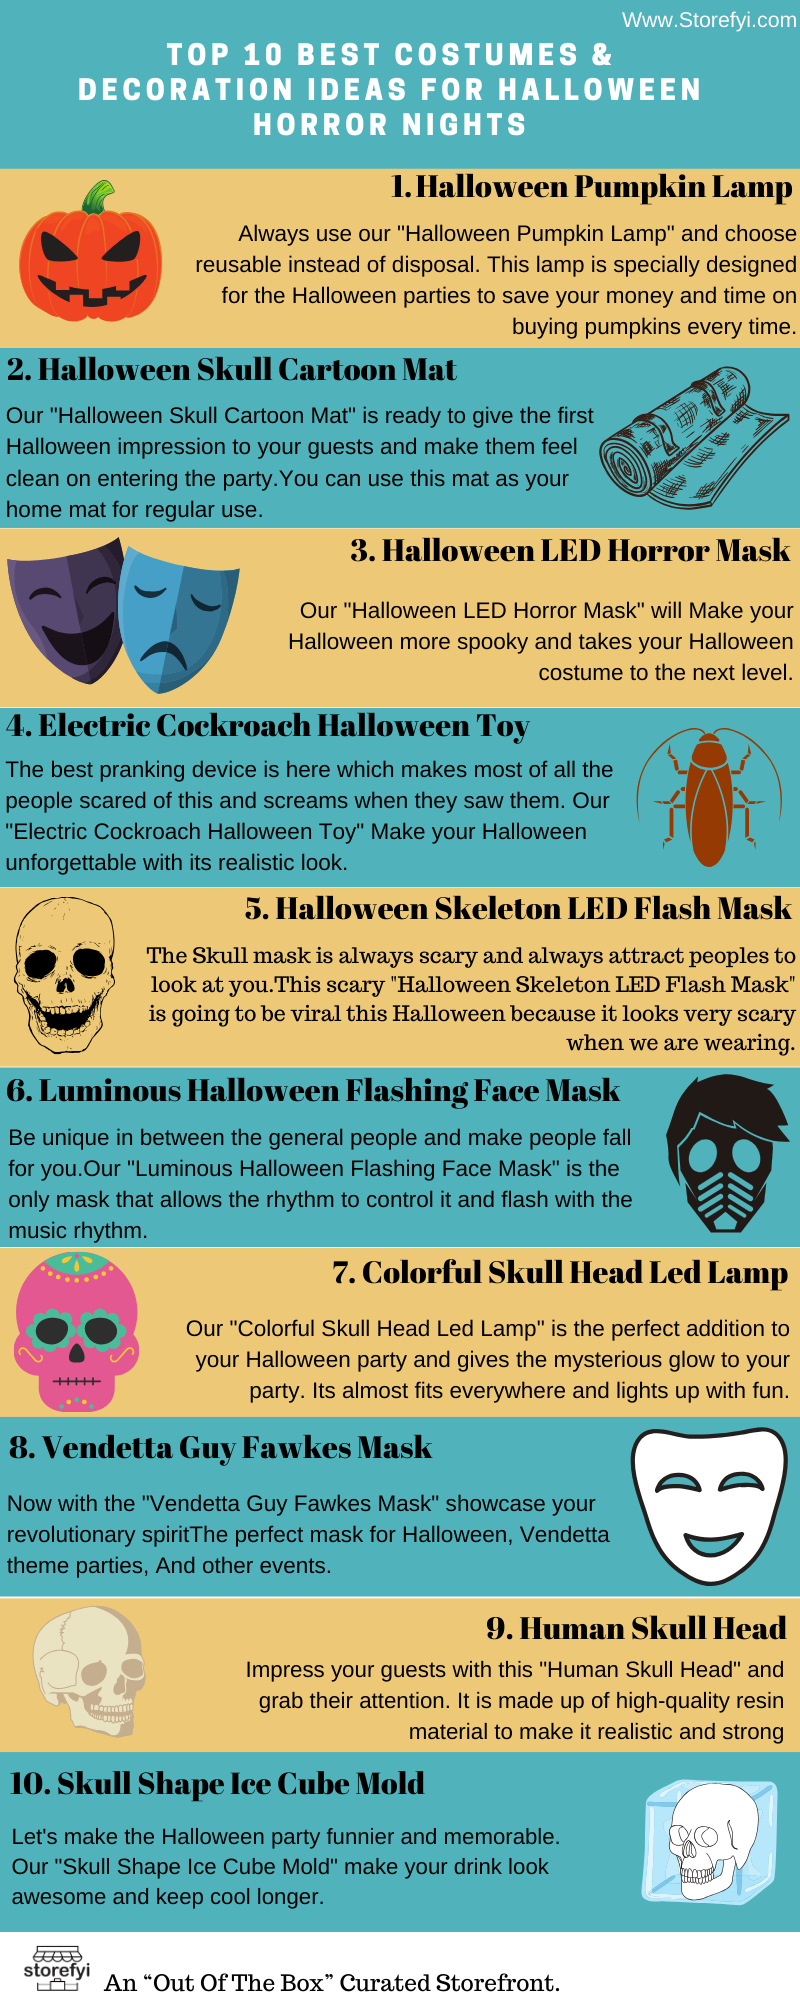 10 Best Halloween Costume ideas infographic